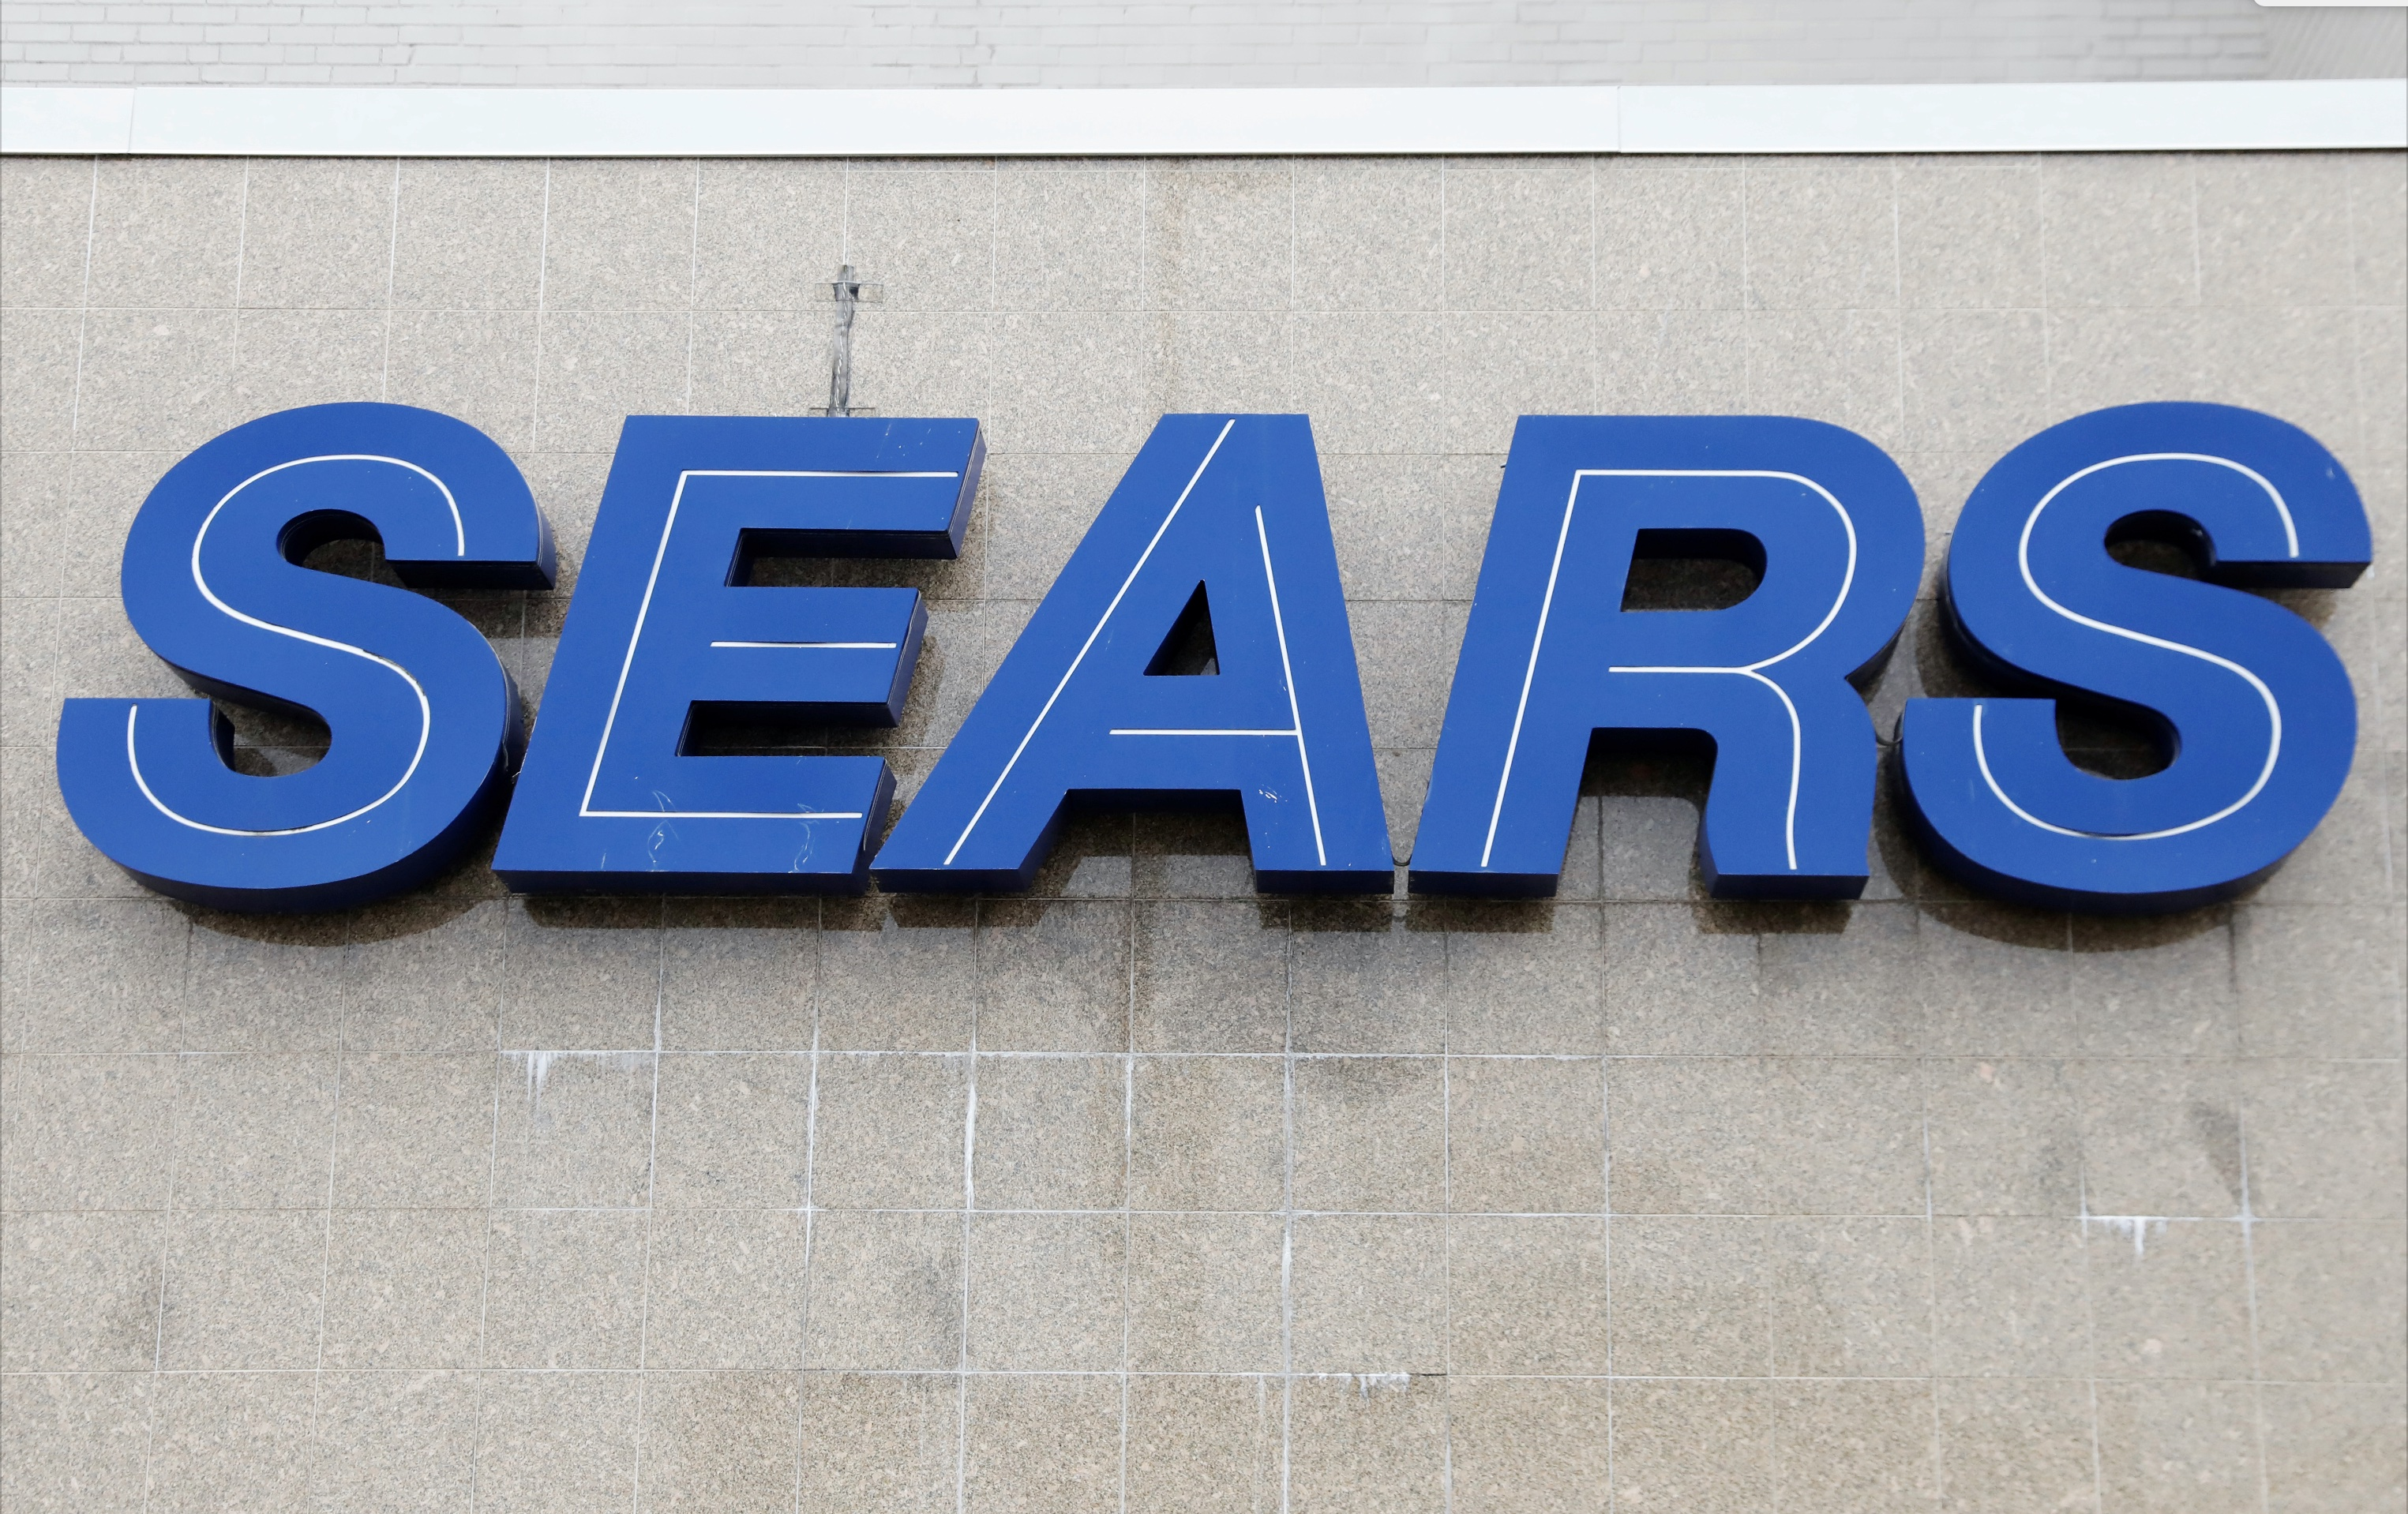 Report: Another 100 Sears and Kmart Stores to Soon Close, Chain Still Struggling